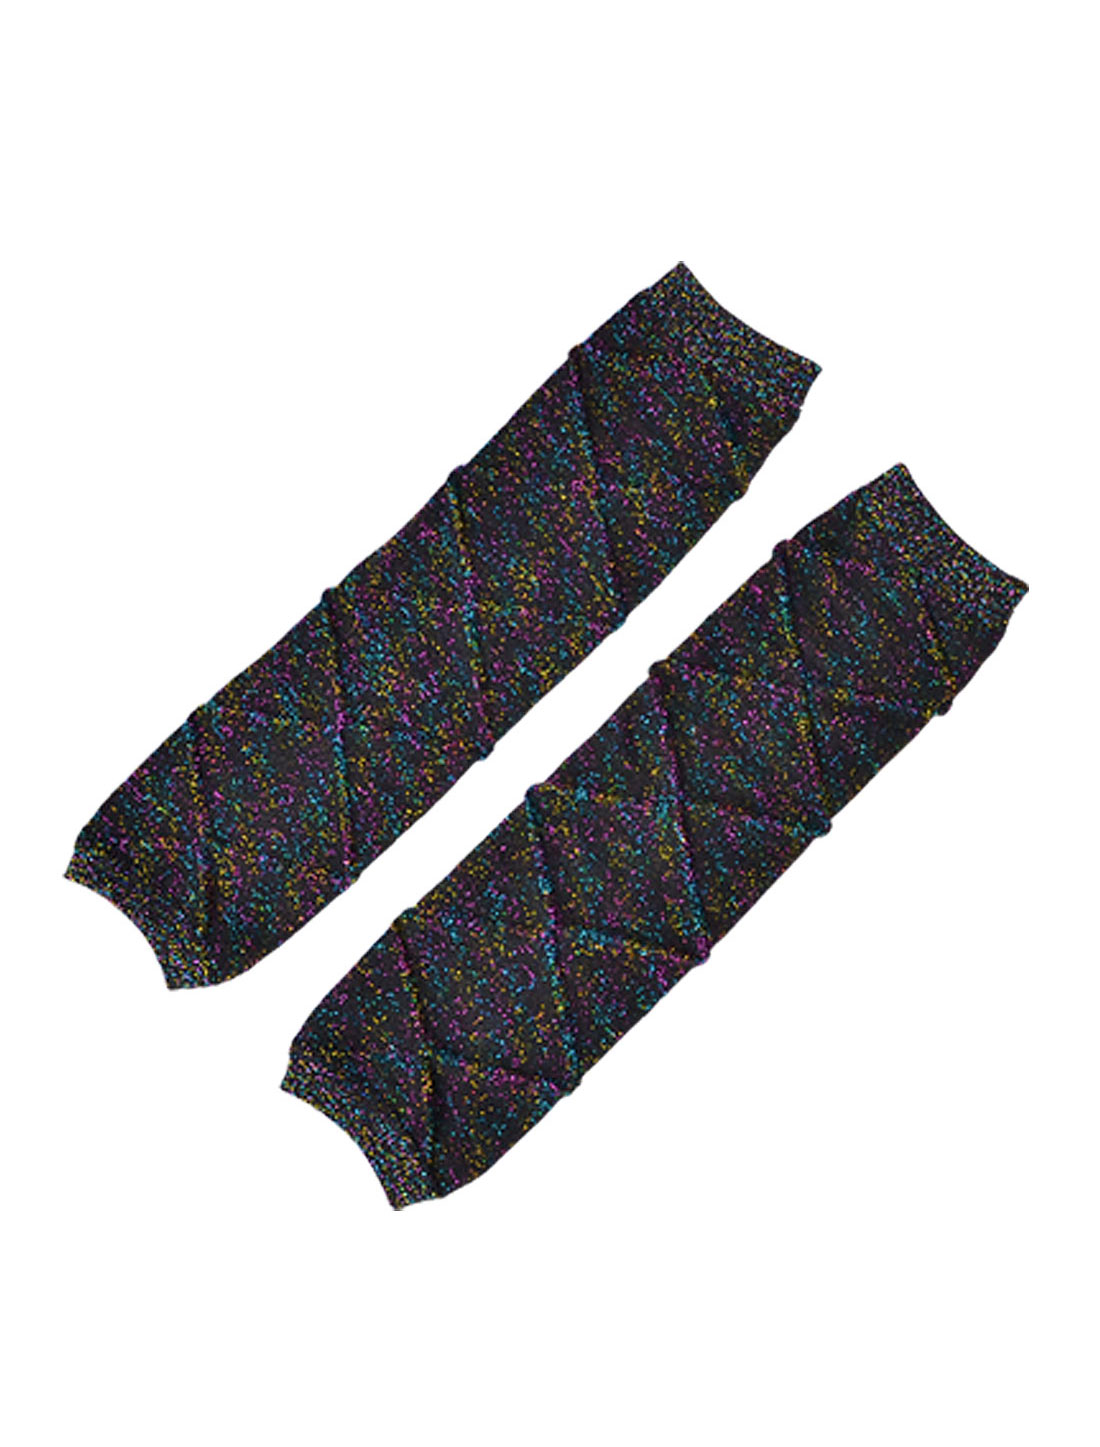 Pair Multicolored Metallic Line Decor Stretch Brown Leg Warmers for Women